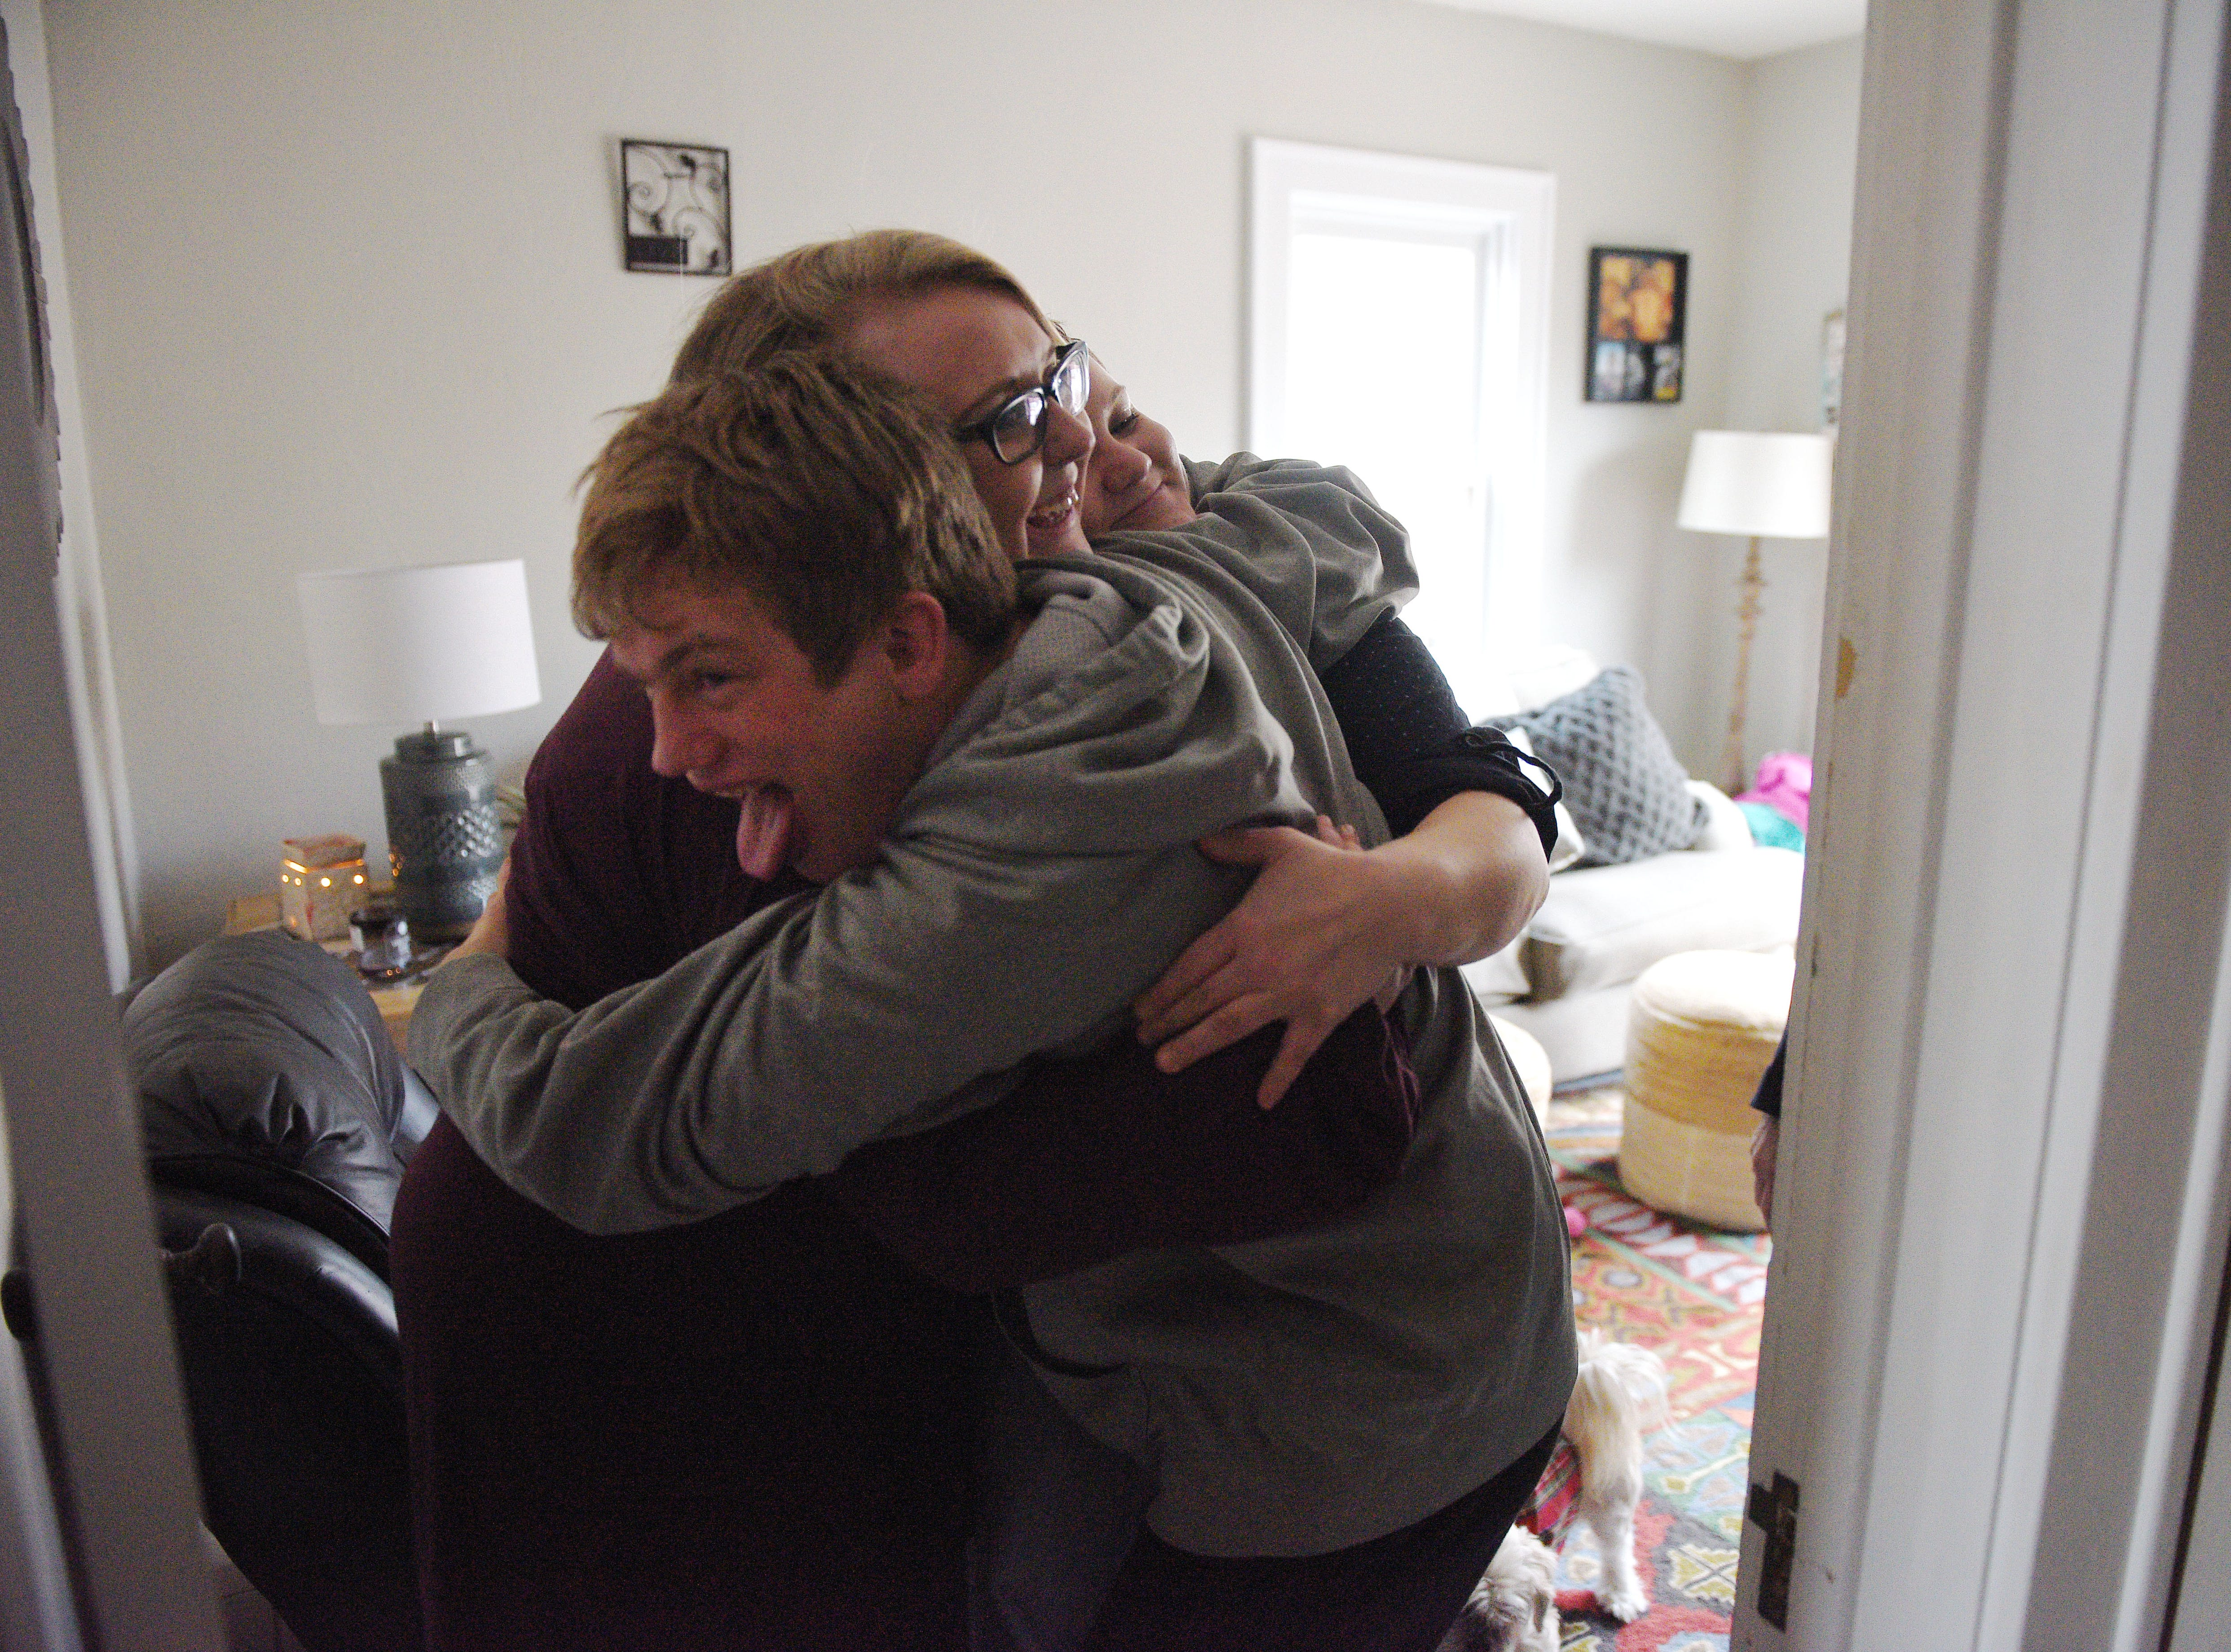 Ben Graff gives a hug to his roommates Kayla Harris and Jenna Askelson Wednesday, Nov. 7, at their house in Sioux Falls. Harris is able to care for Ben by being a Shared Living Provider.